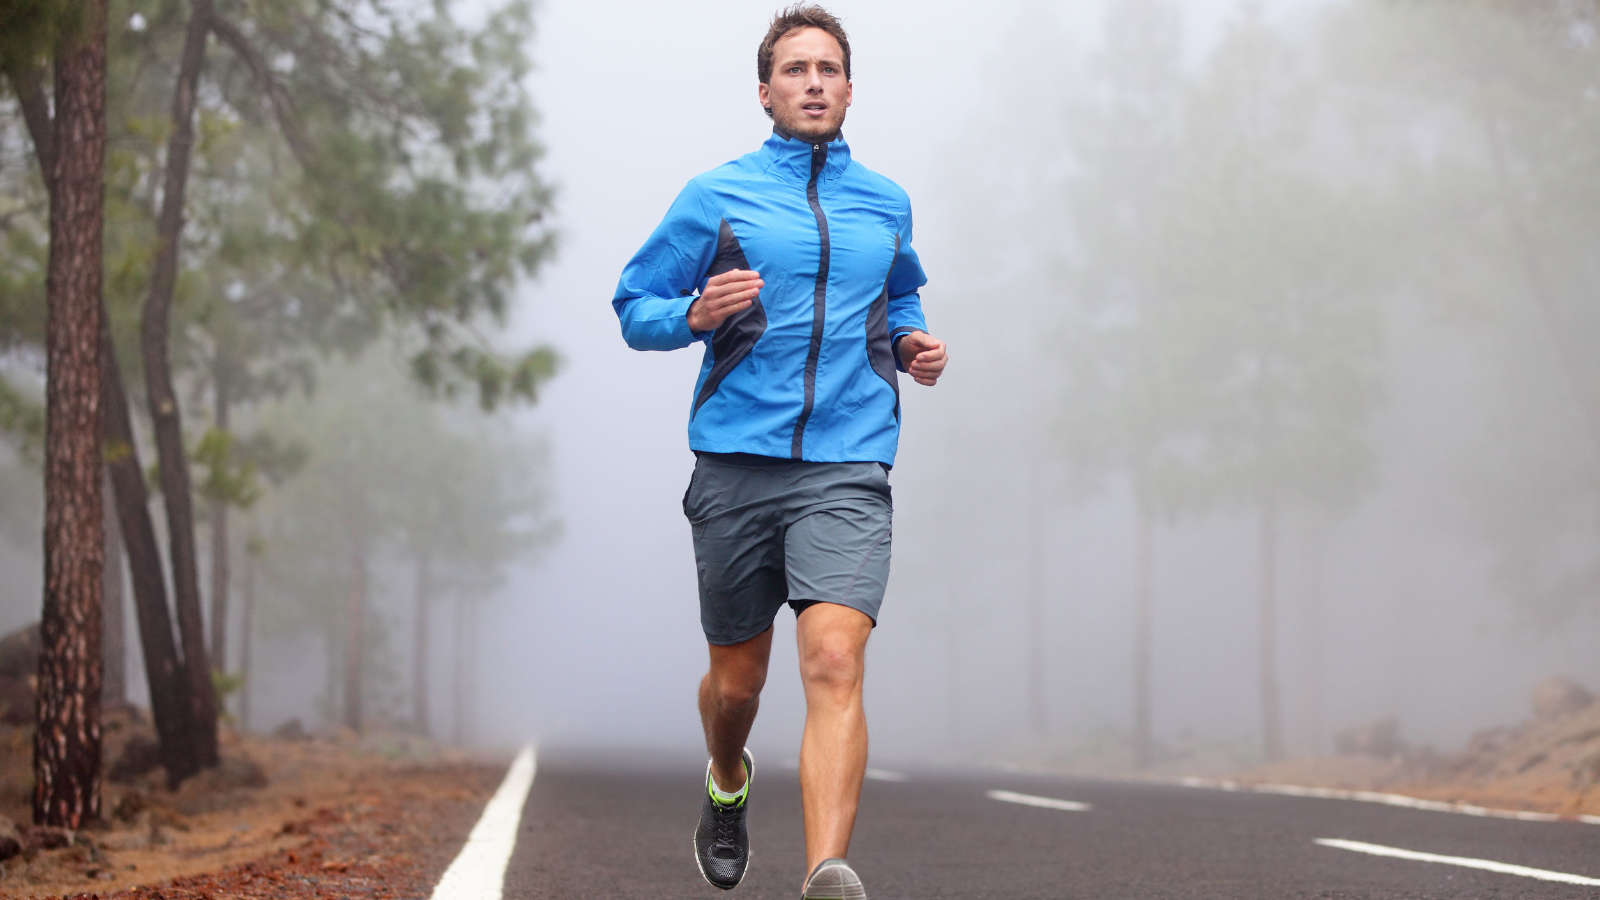 Jogging Run Time How To Run Your First 50km And 100km Or More Without Killing